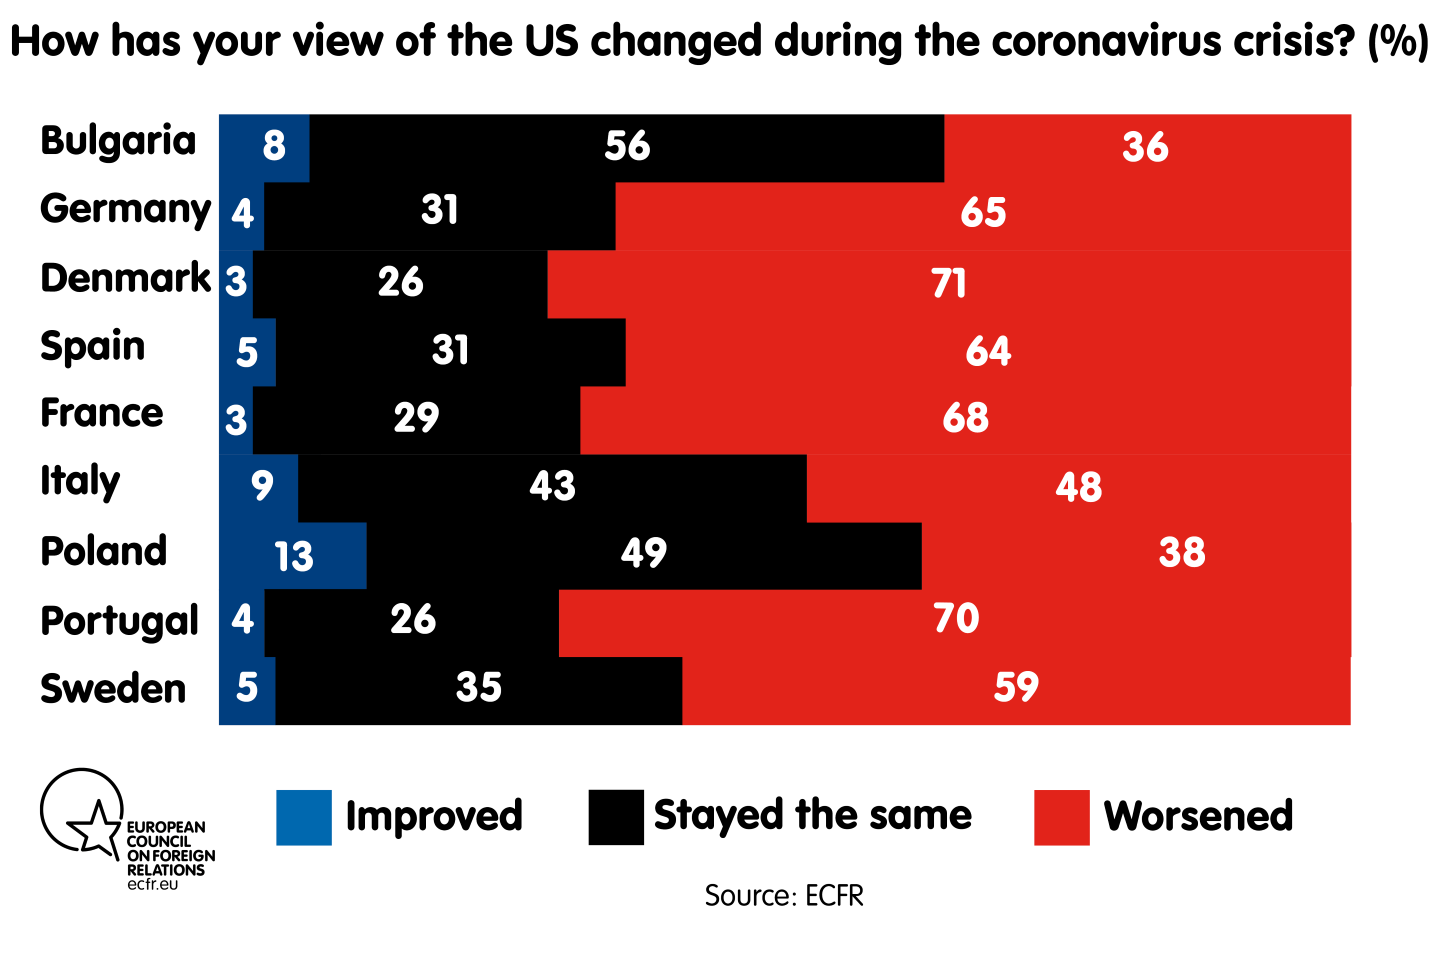 Has your view of the US changed during the coronavirus crisis?